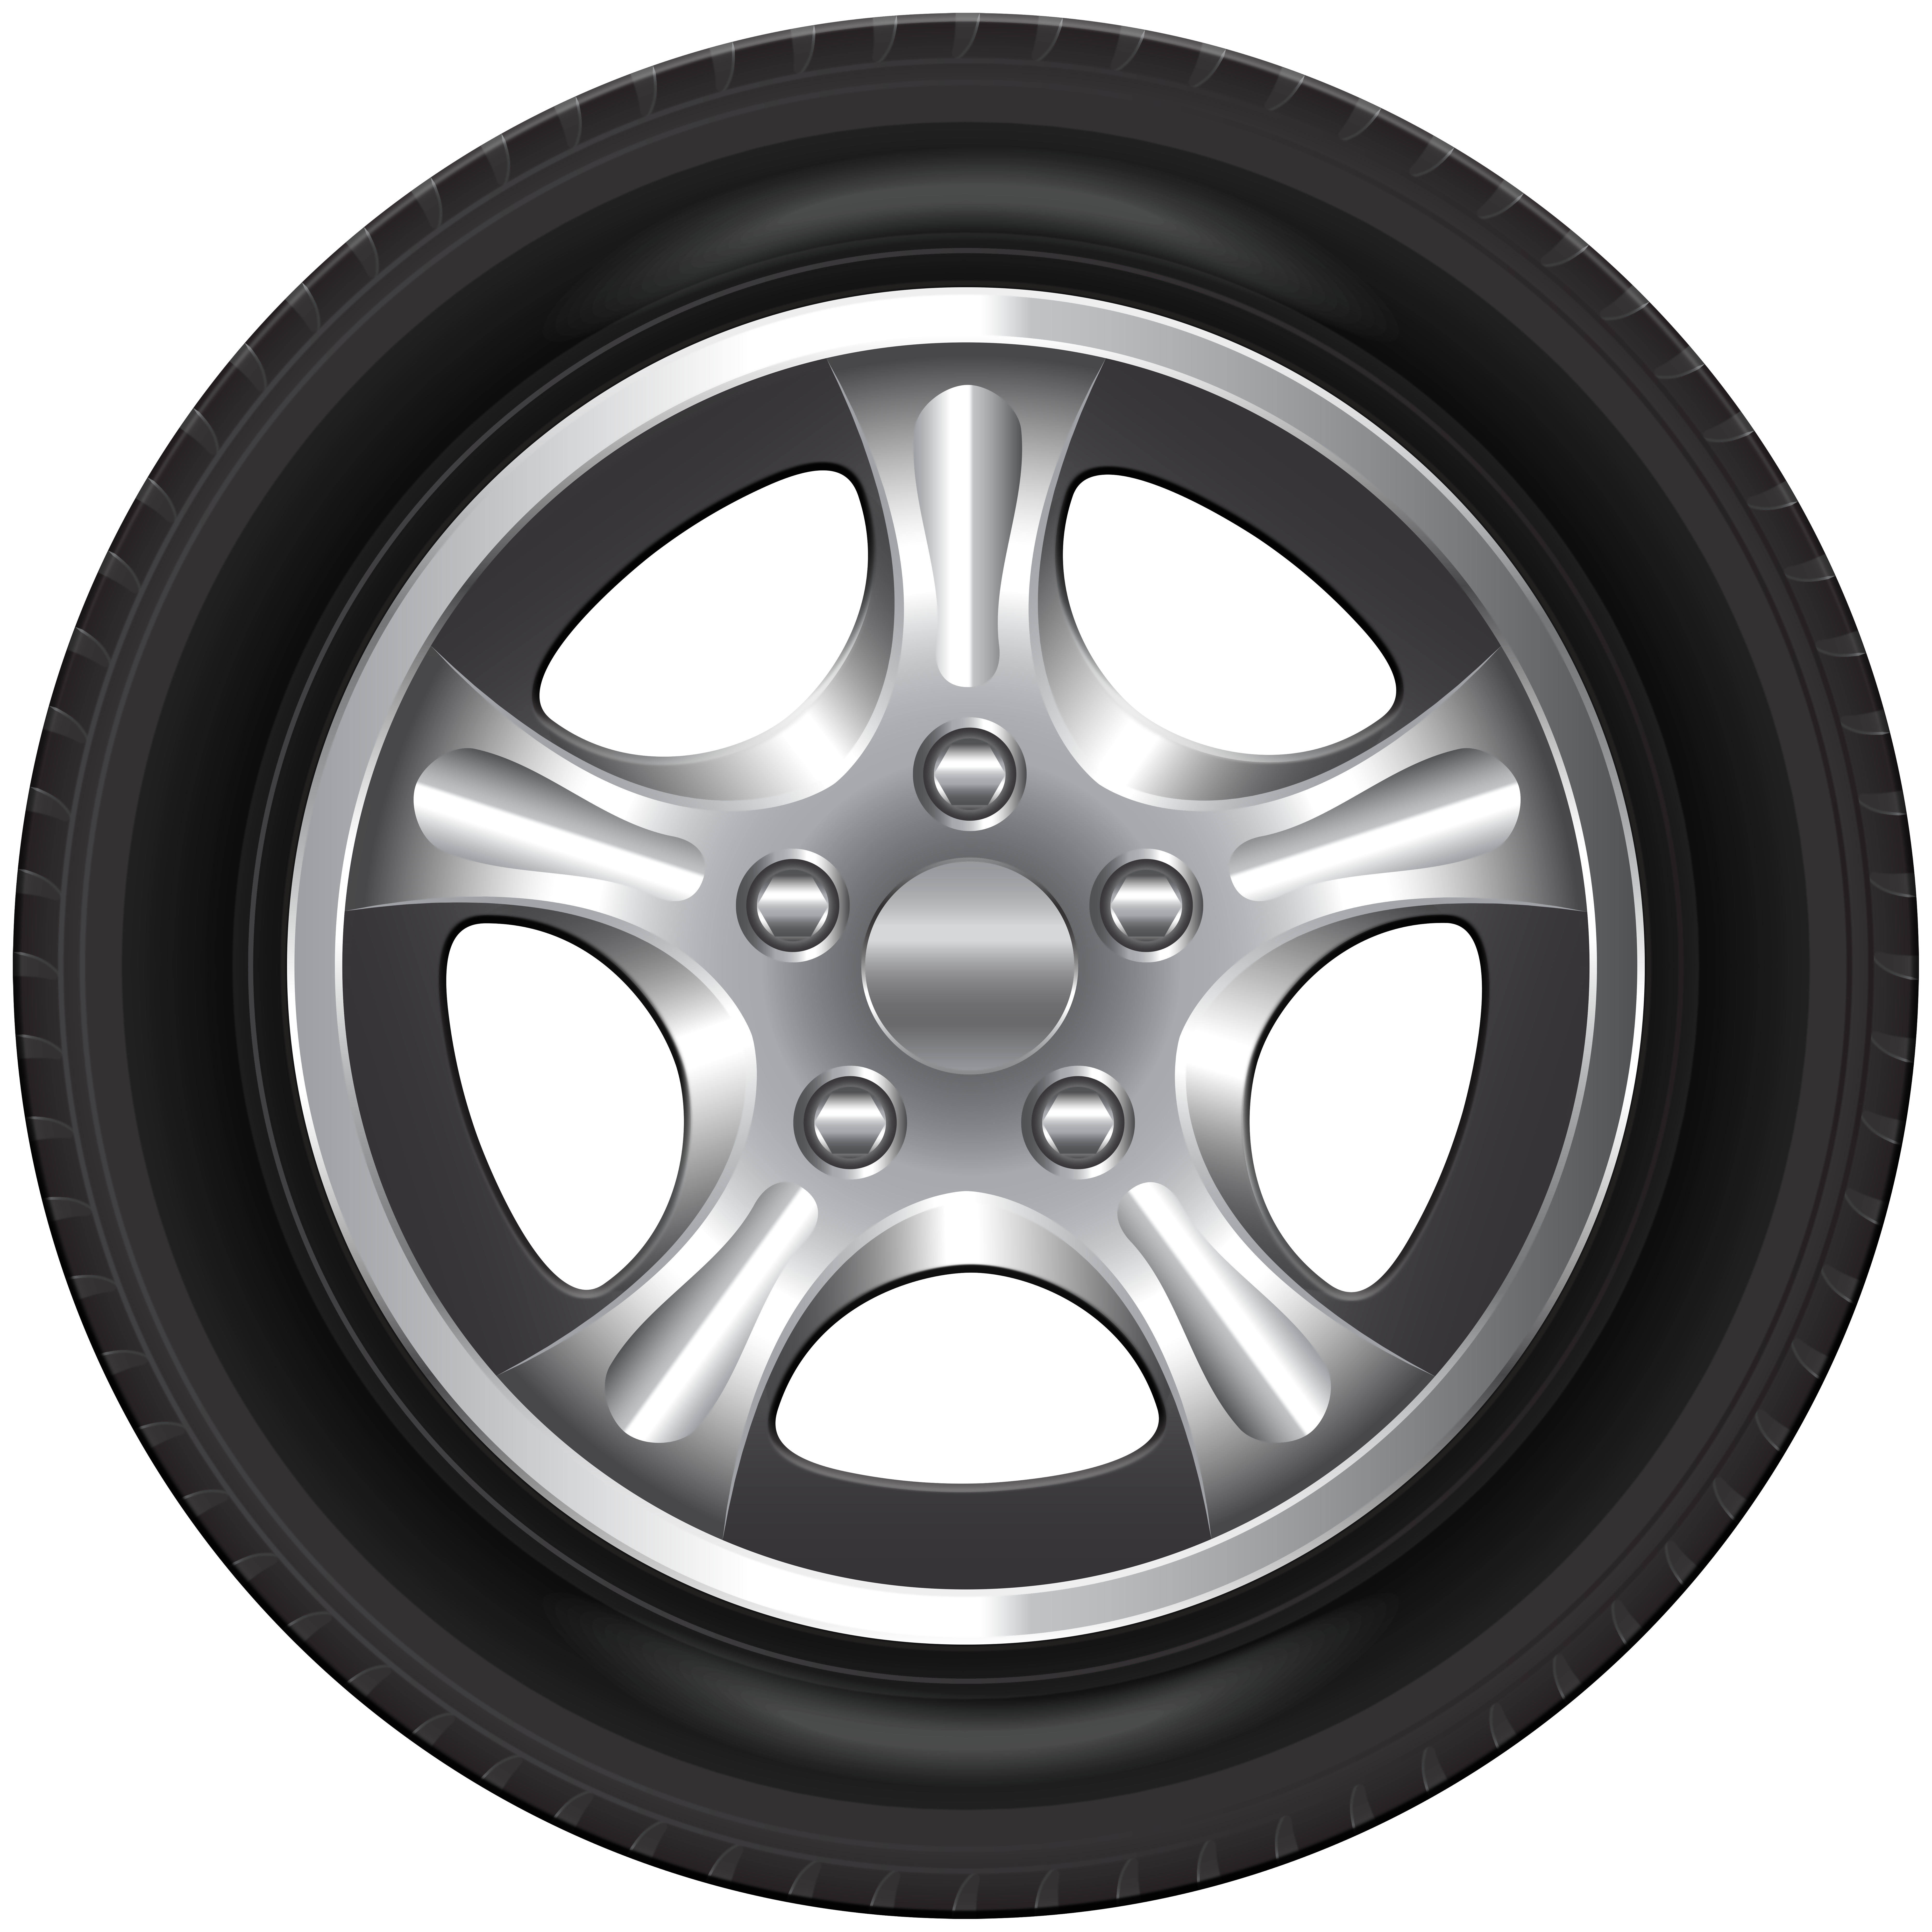 Tire clipart high resolution clip art library download Tire PNG Clip Art - Best WEB Clipart clip art library download